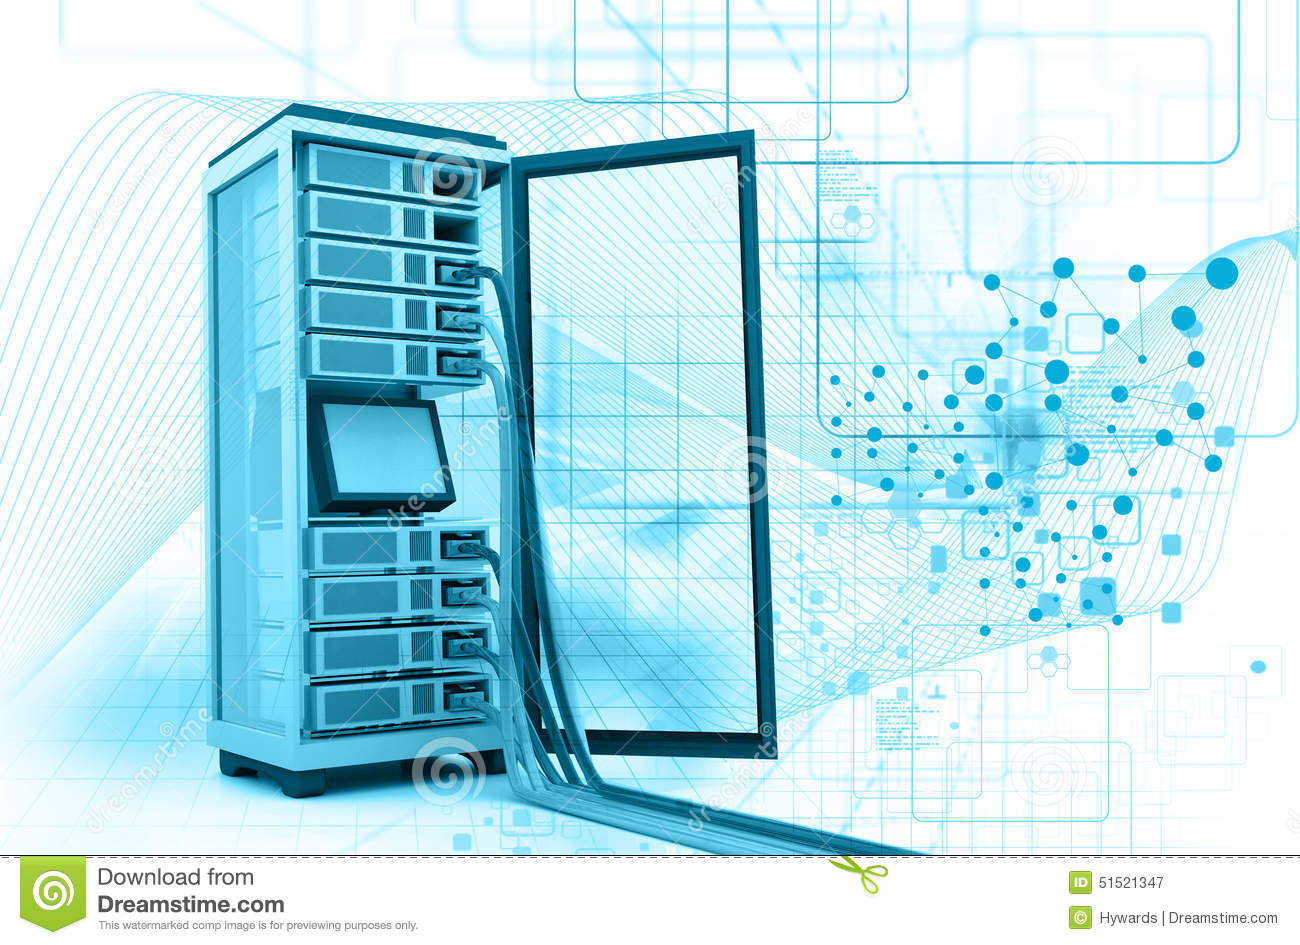 hight resolution of server rack with network cables